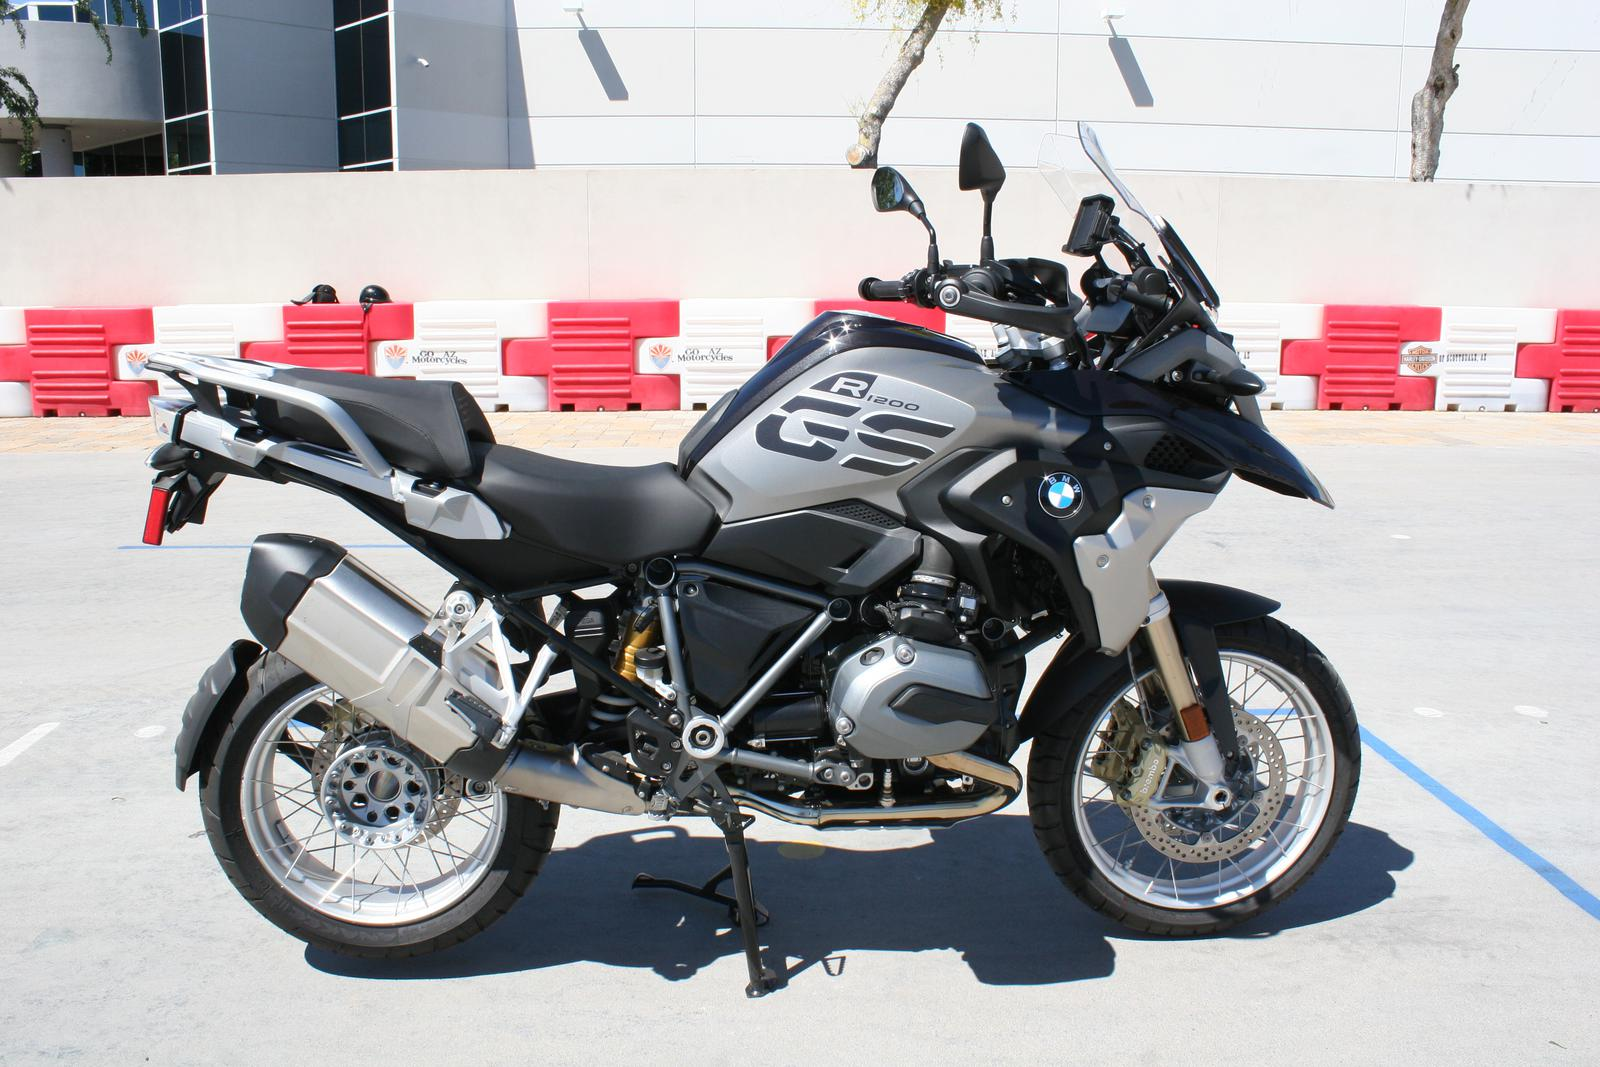 2018 Bmw R 1200 Gs Exclusive Style For Sale In Scottsdale Az Go